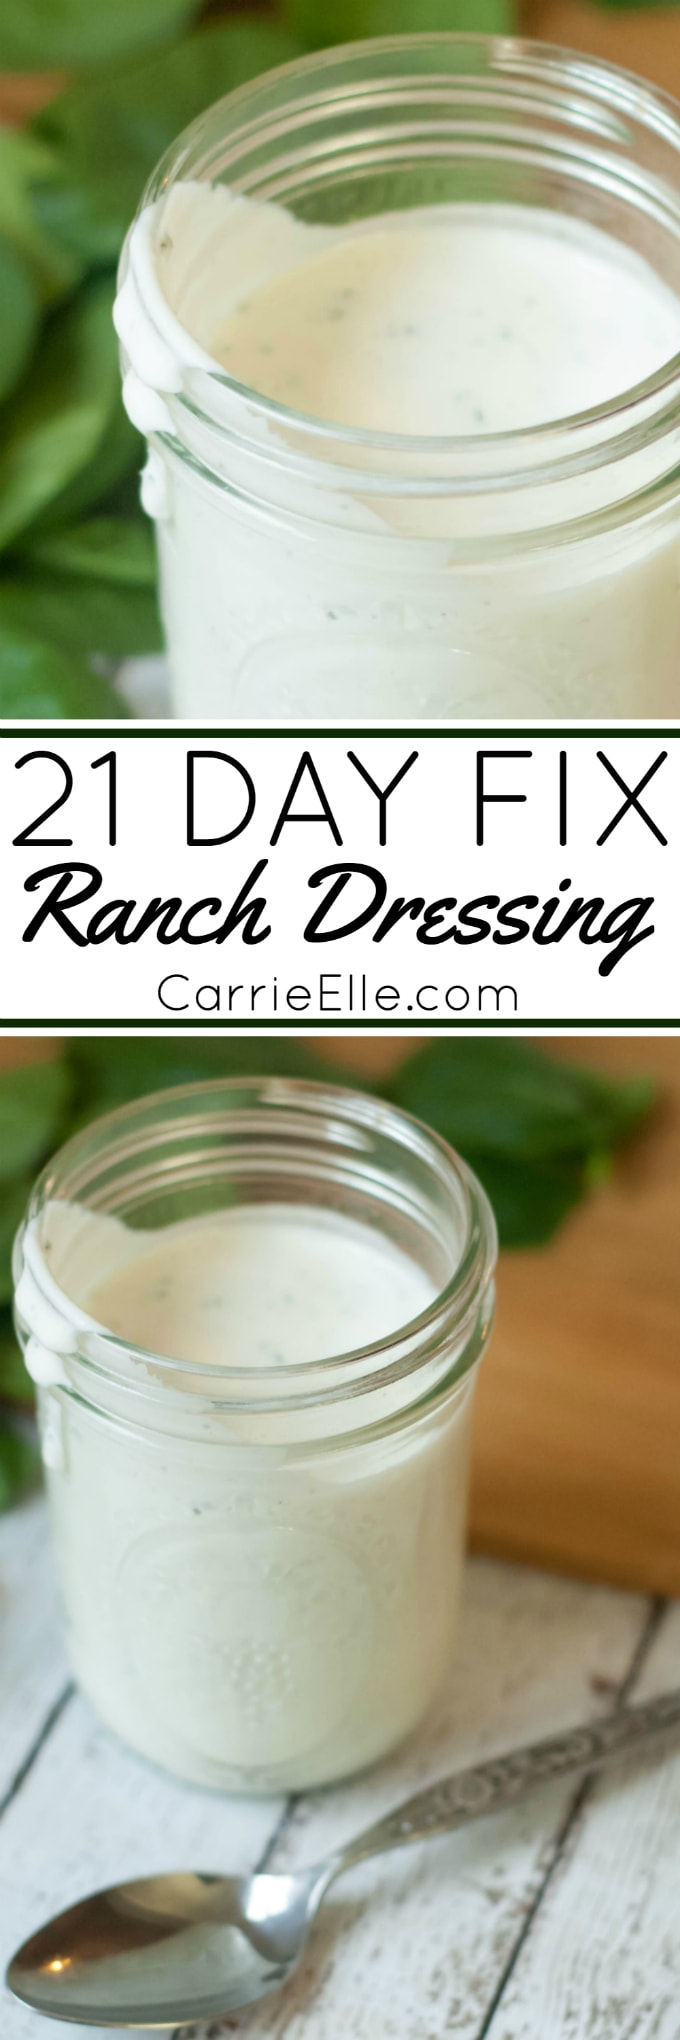 21 Day Fix Ranch Dressing Recipe